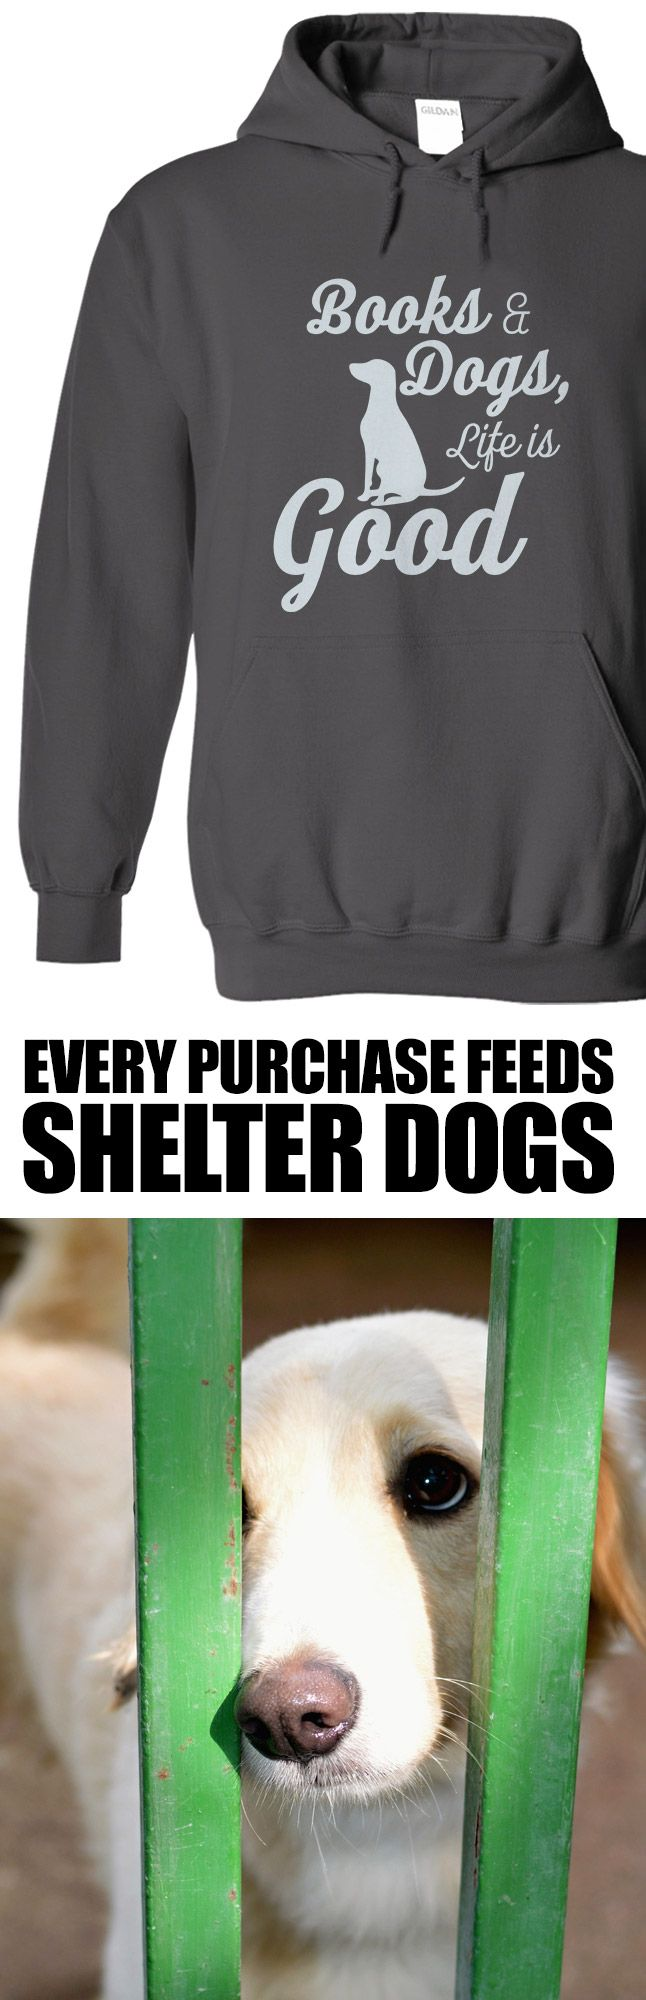 Love this design and the cause! Each hoodie feeds 15 dogs, each shirt feeds 7! http://iheartdogs.com/product/life-is-good-hoodie/?utm_source=PinterestAd_LifeIsGoodHoodie&utm_medium=link&utm_campaign=PinterestAd_LifeIsGoodHoodie